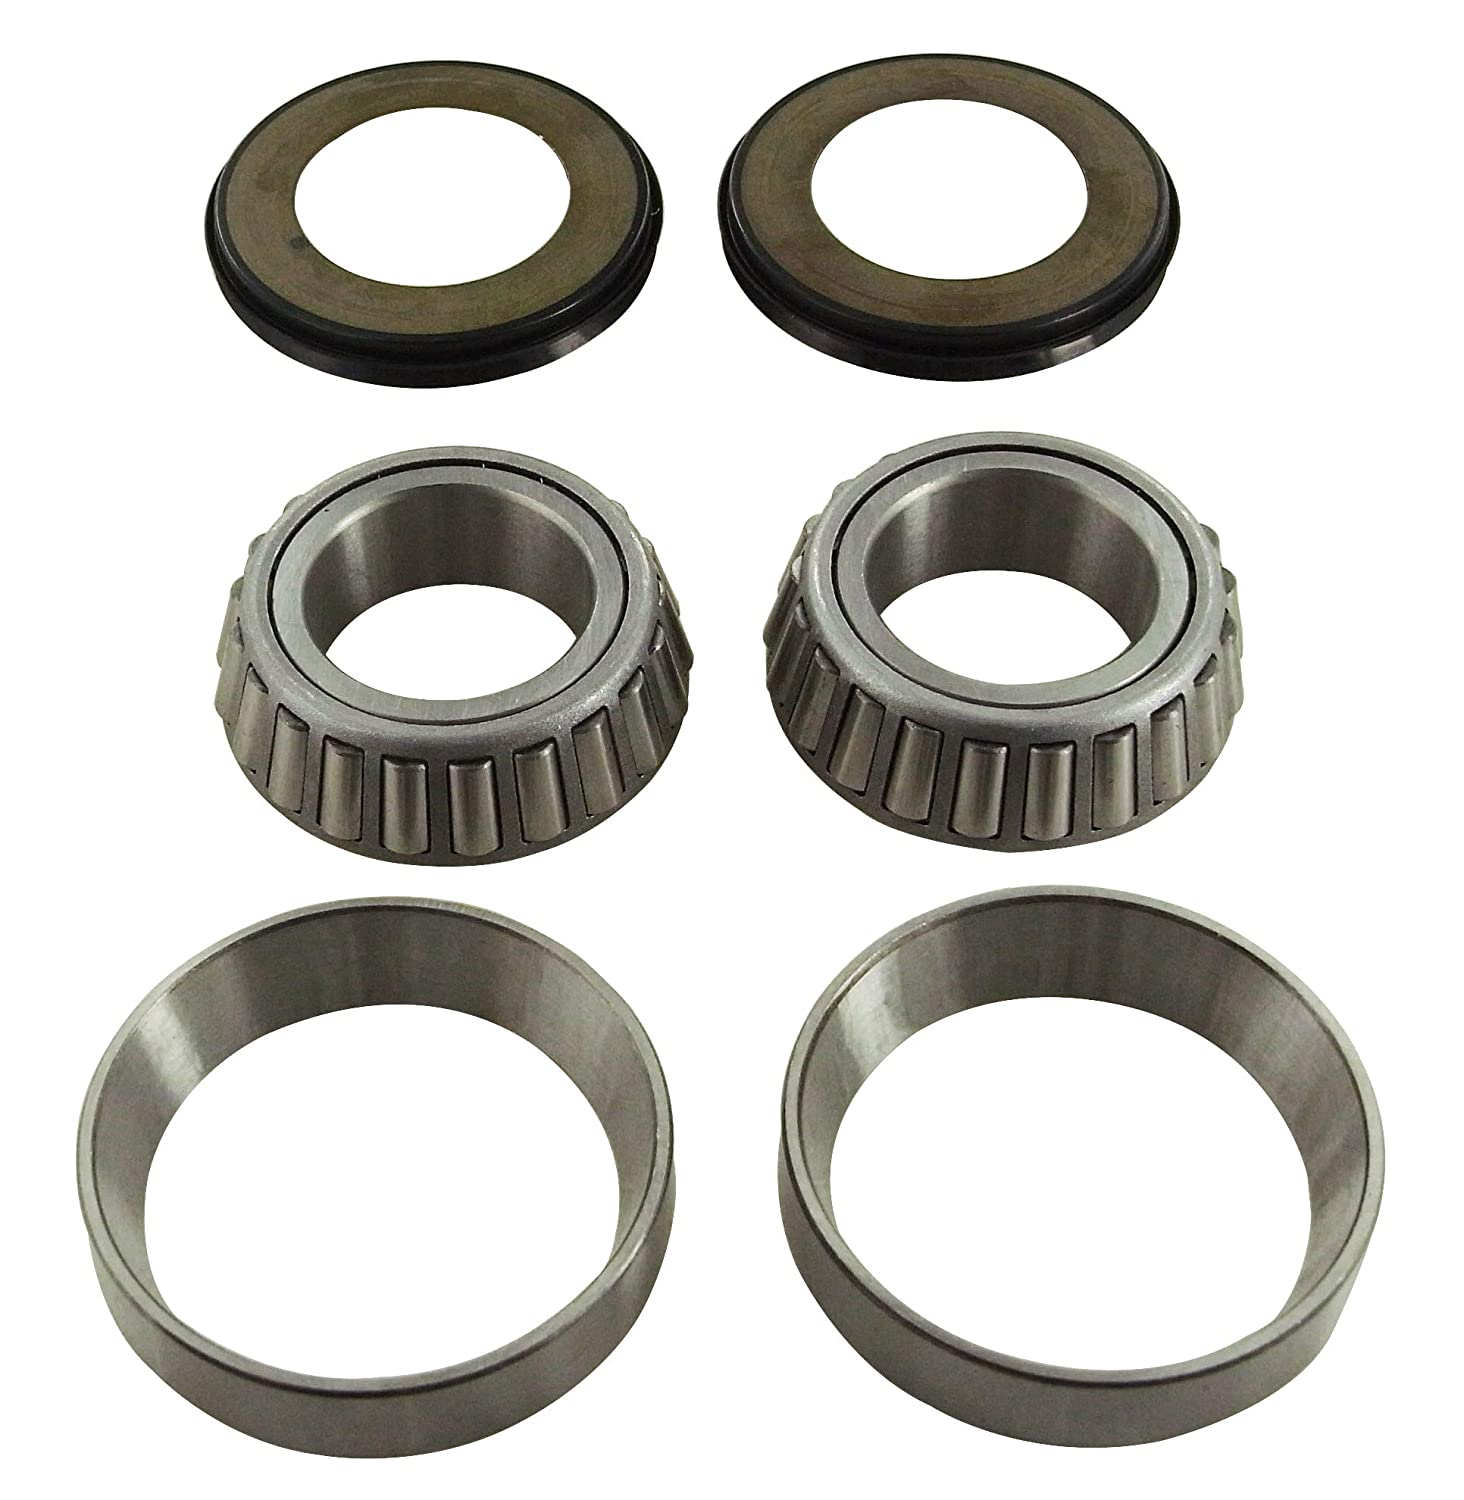 New HQ Powersports Steering Bearings BMW Fort Worth Mall Replacement For Attention brand R45 78